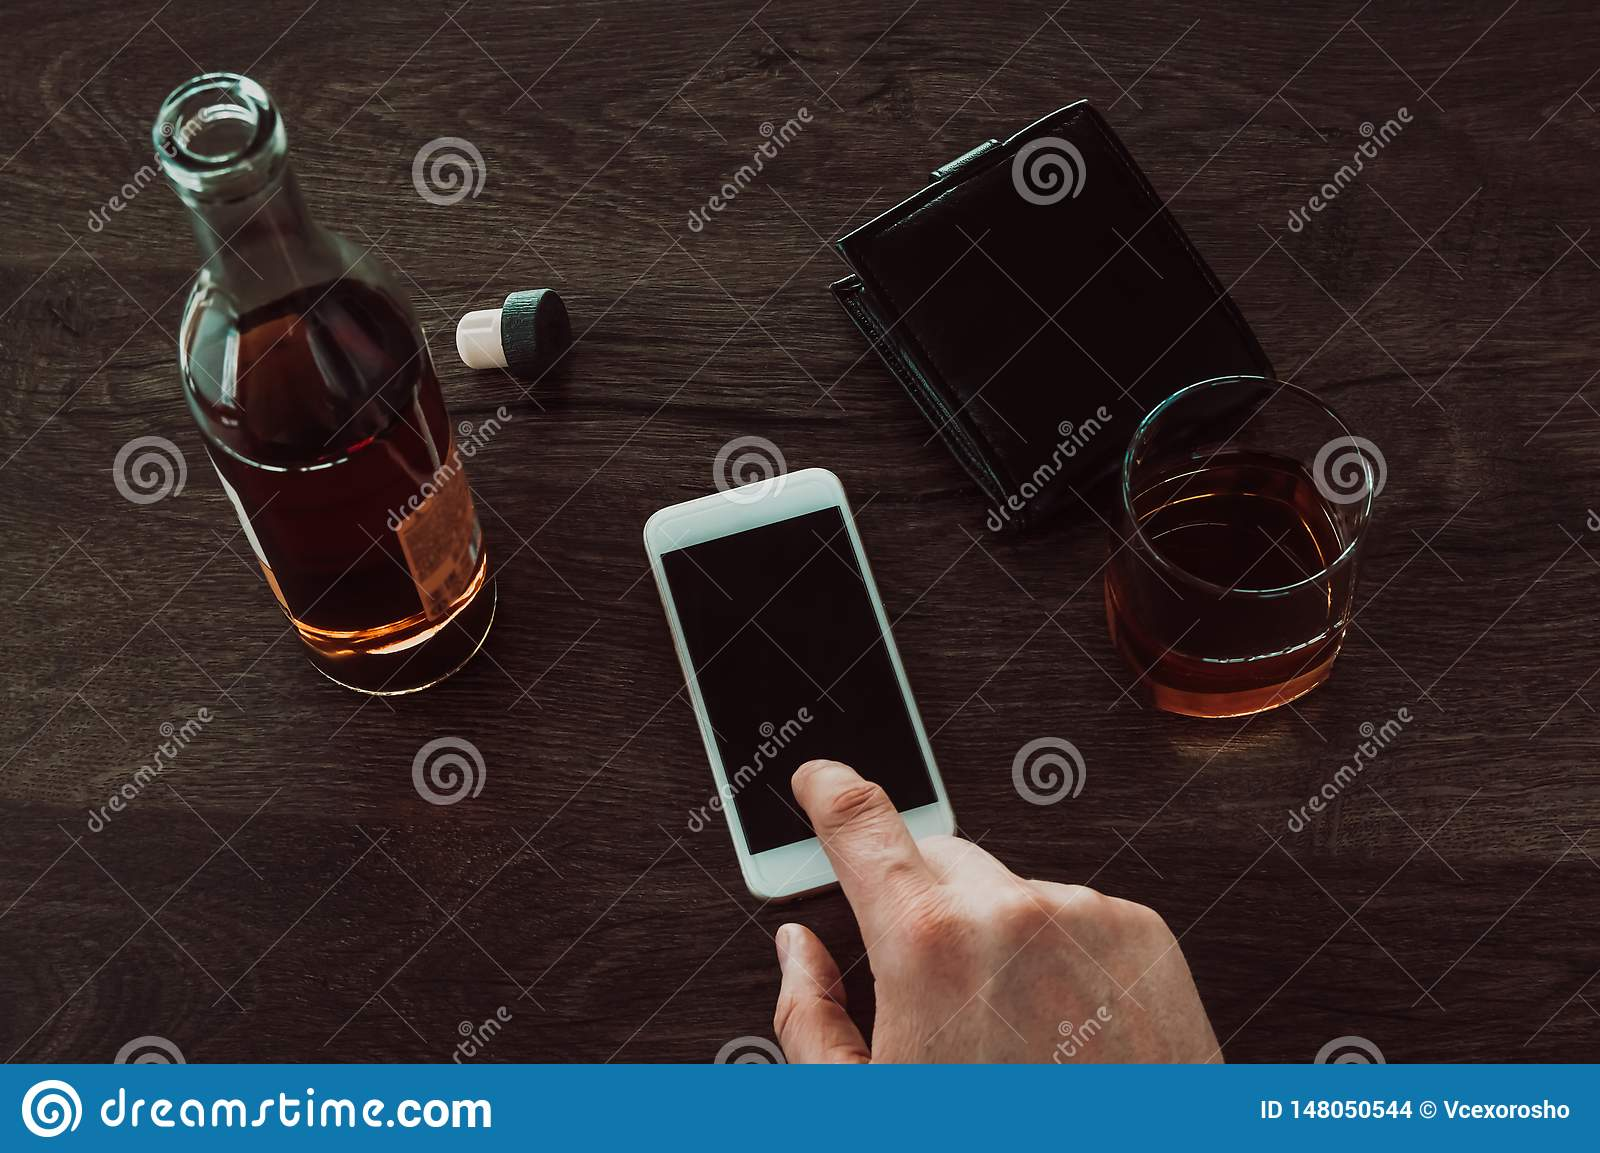 A man presses a finger on a mobile phone. Next on the table is a glass of whiskey, a bottle of whiskey and a purse